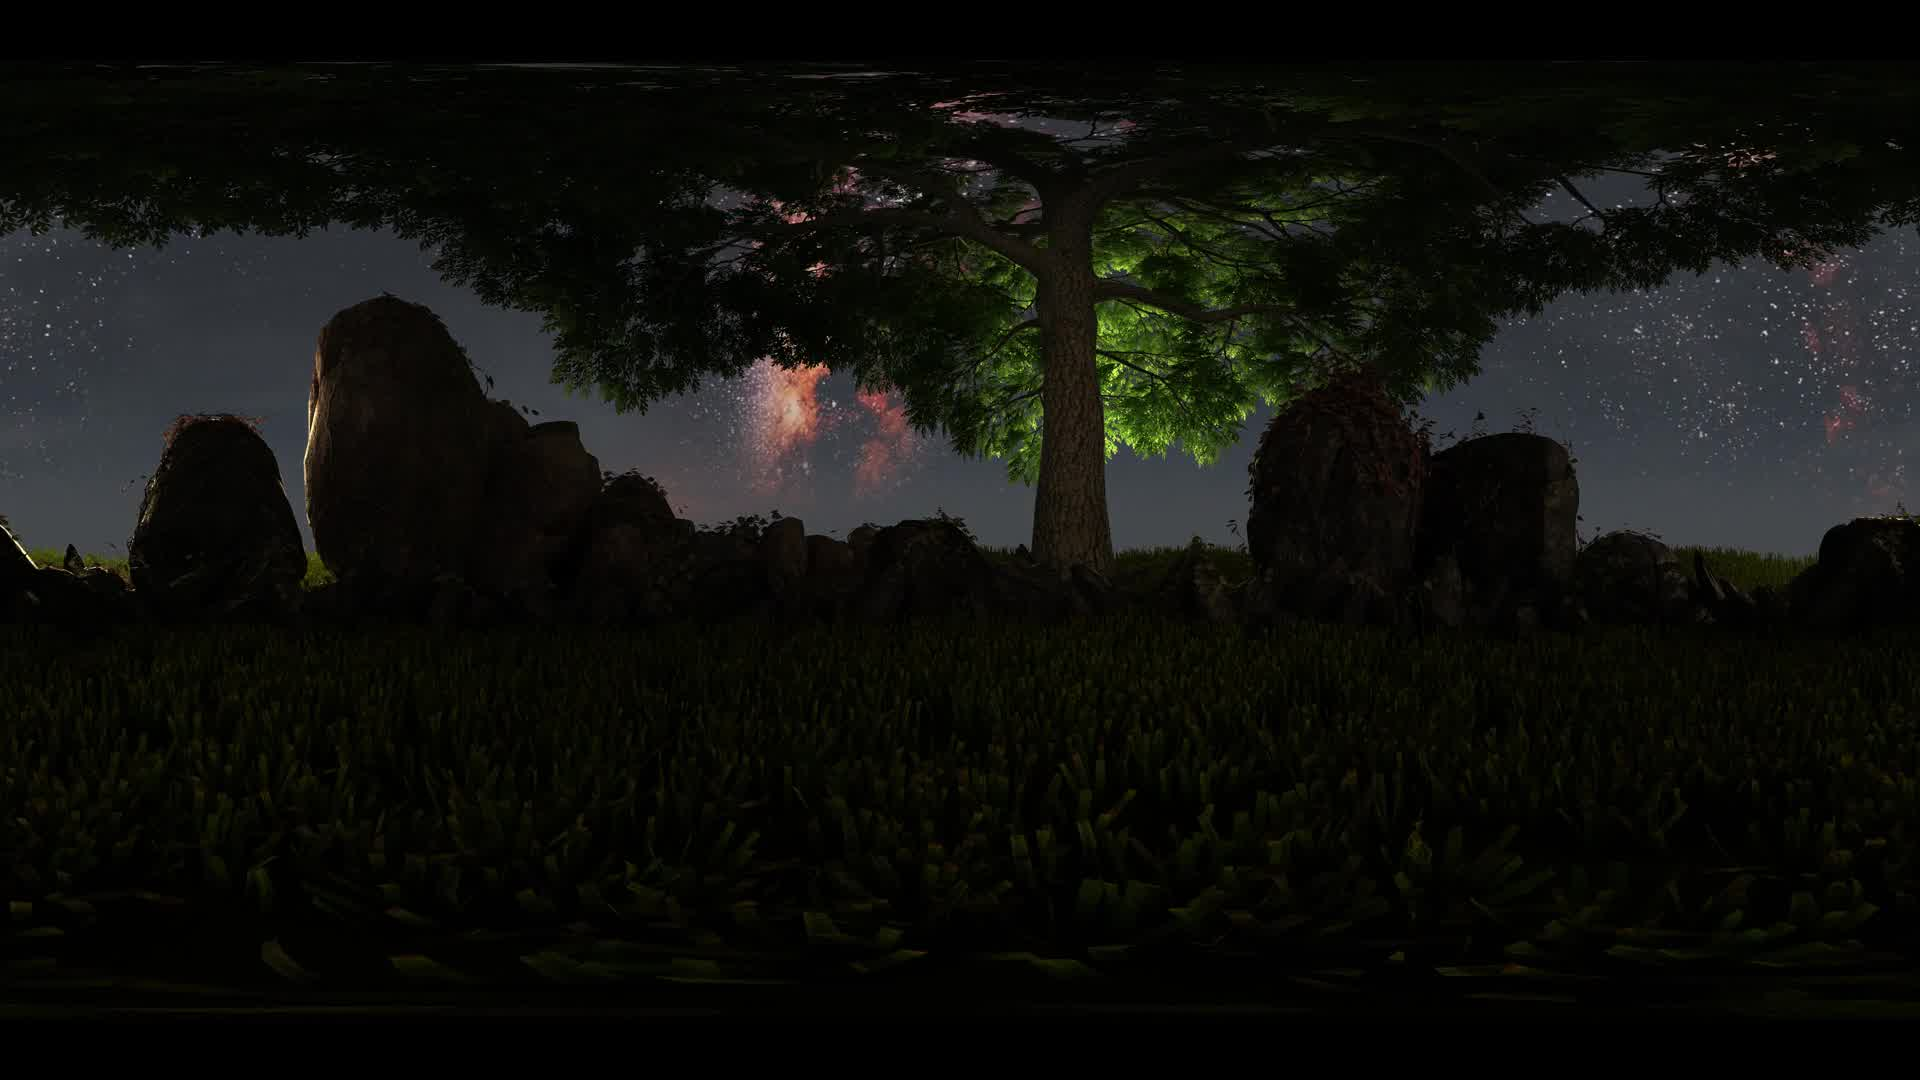 5K Milky Way stars at sunset and tree virtual reality 360 degree video. Elements of this image furnished by NASA